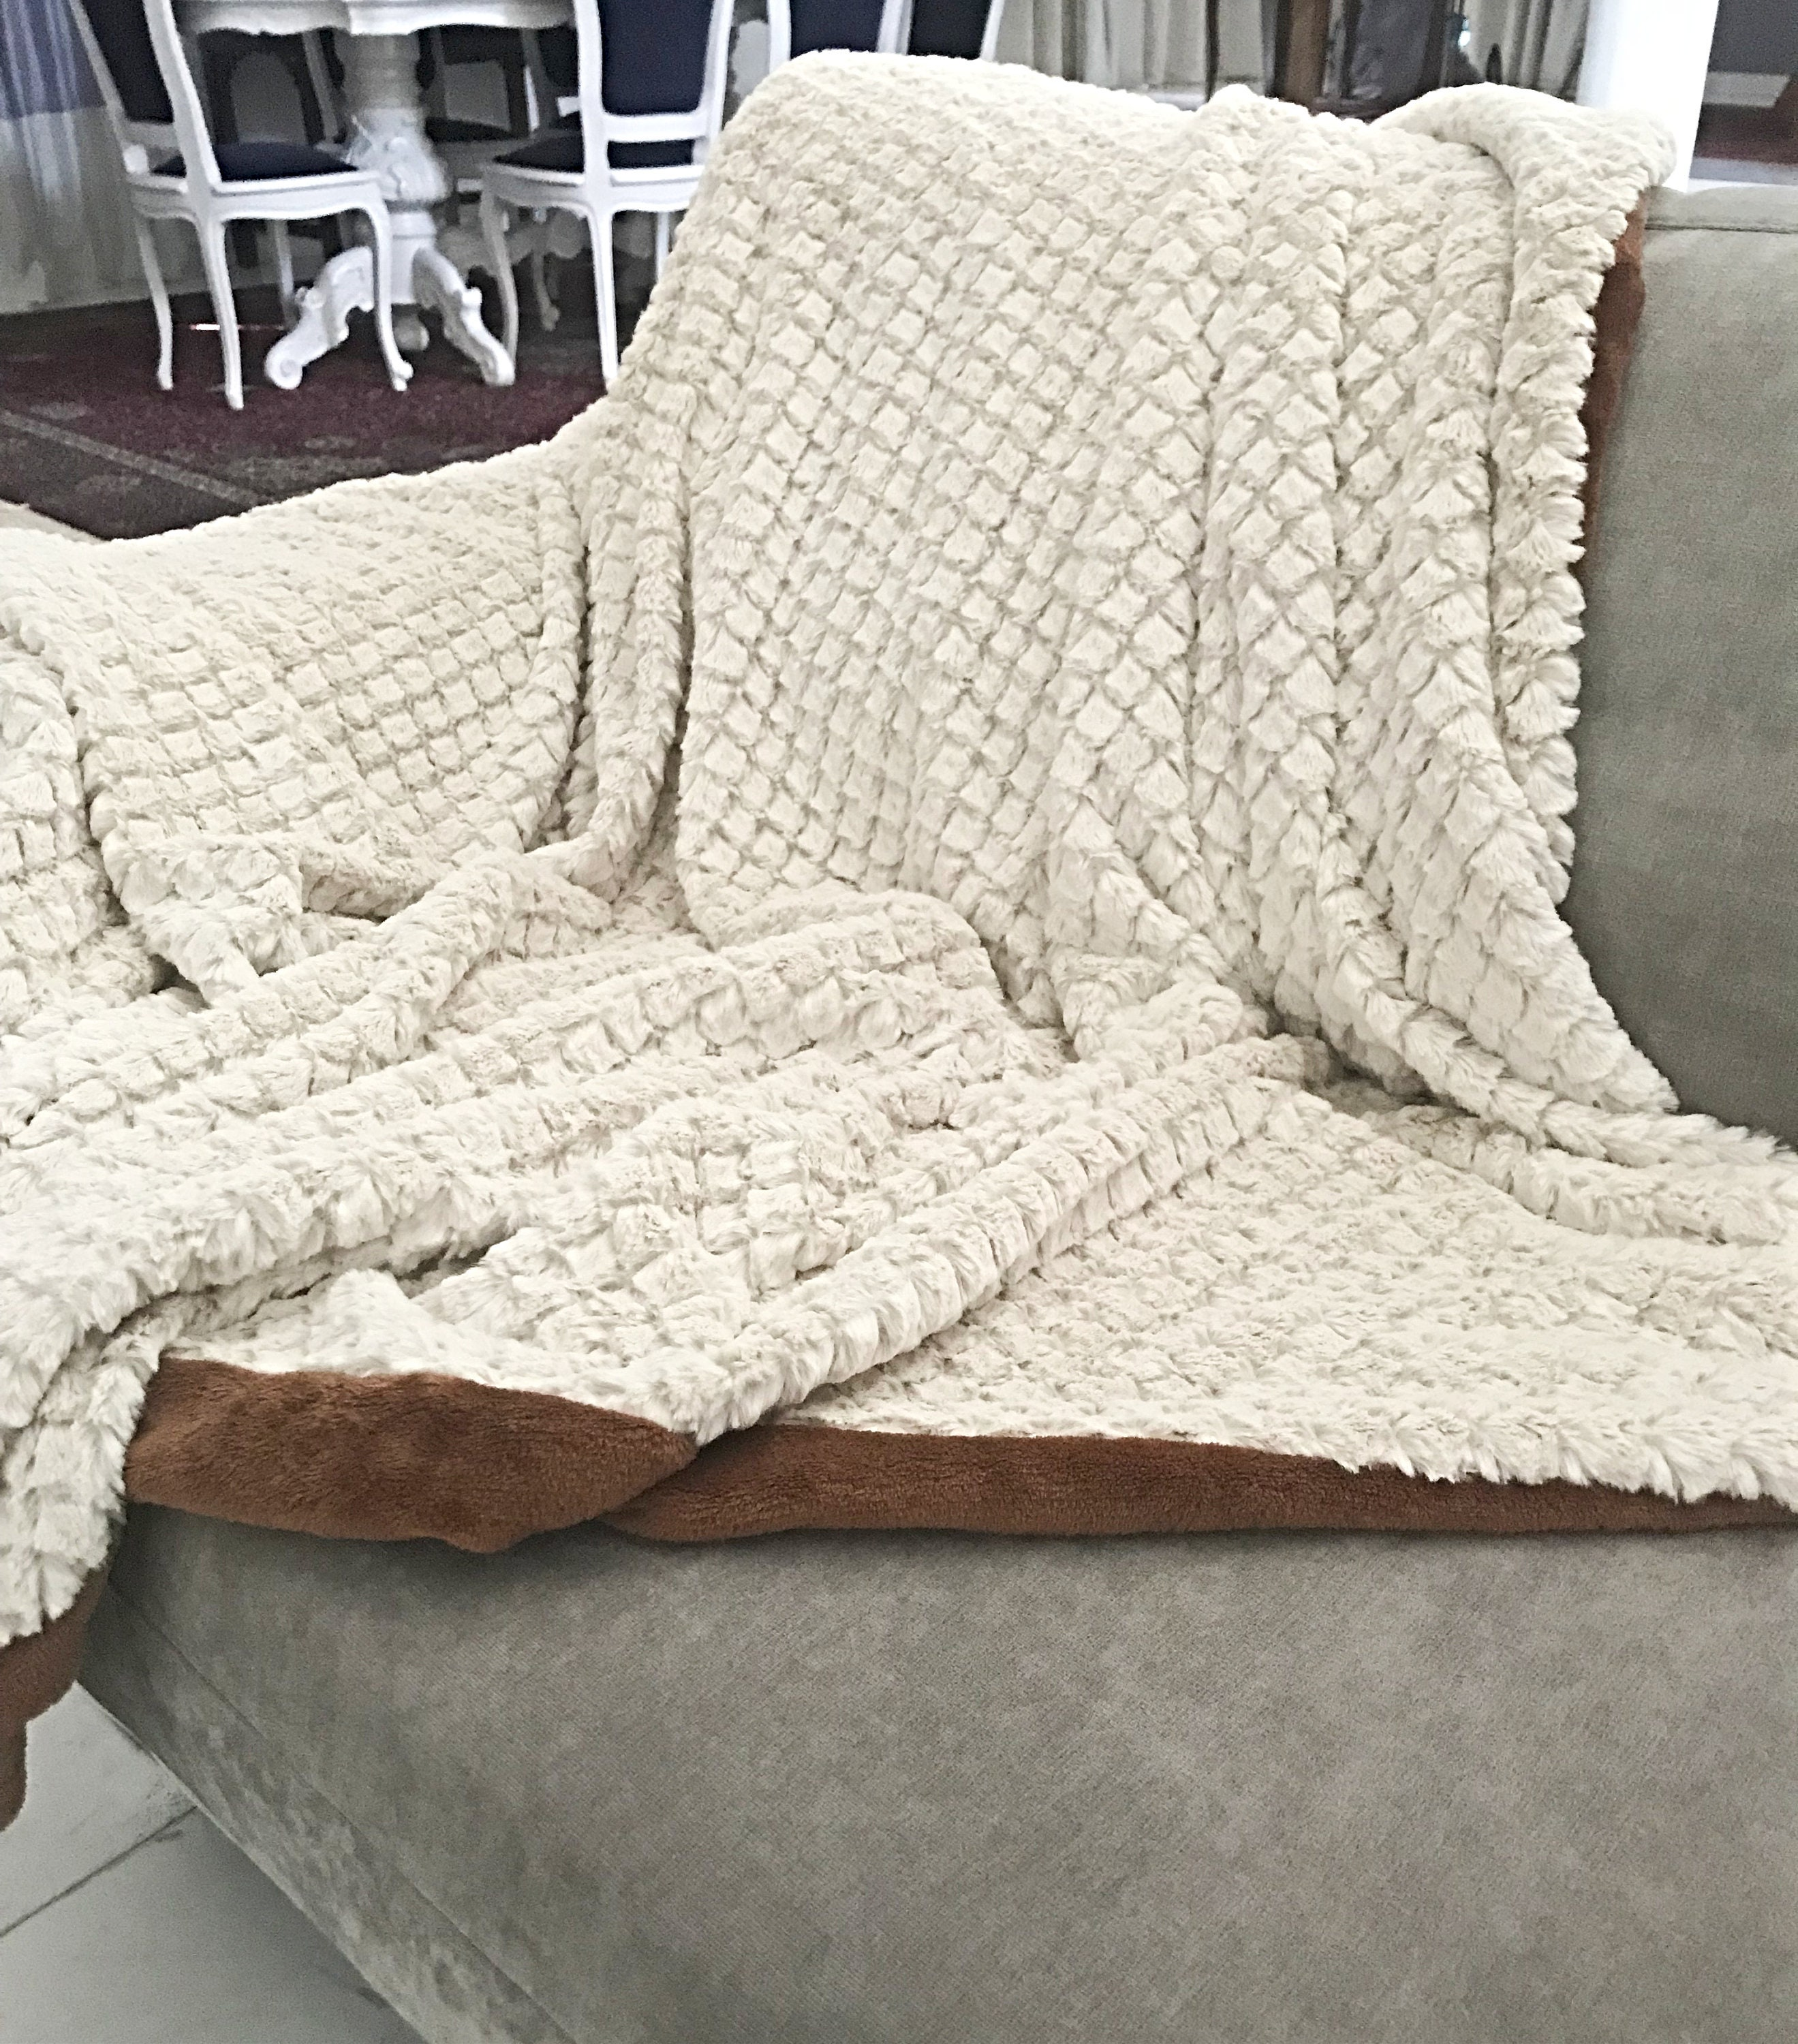 Faux Fur Throw in Off White with Camel Back, Large Throw for ...